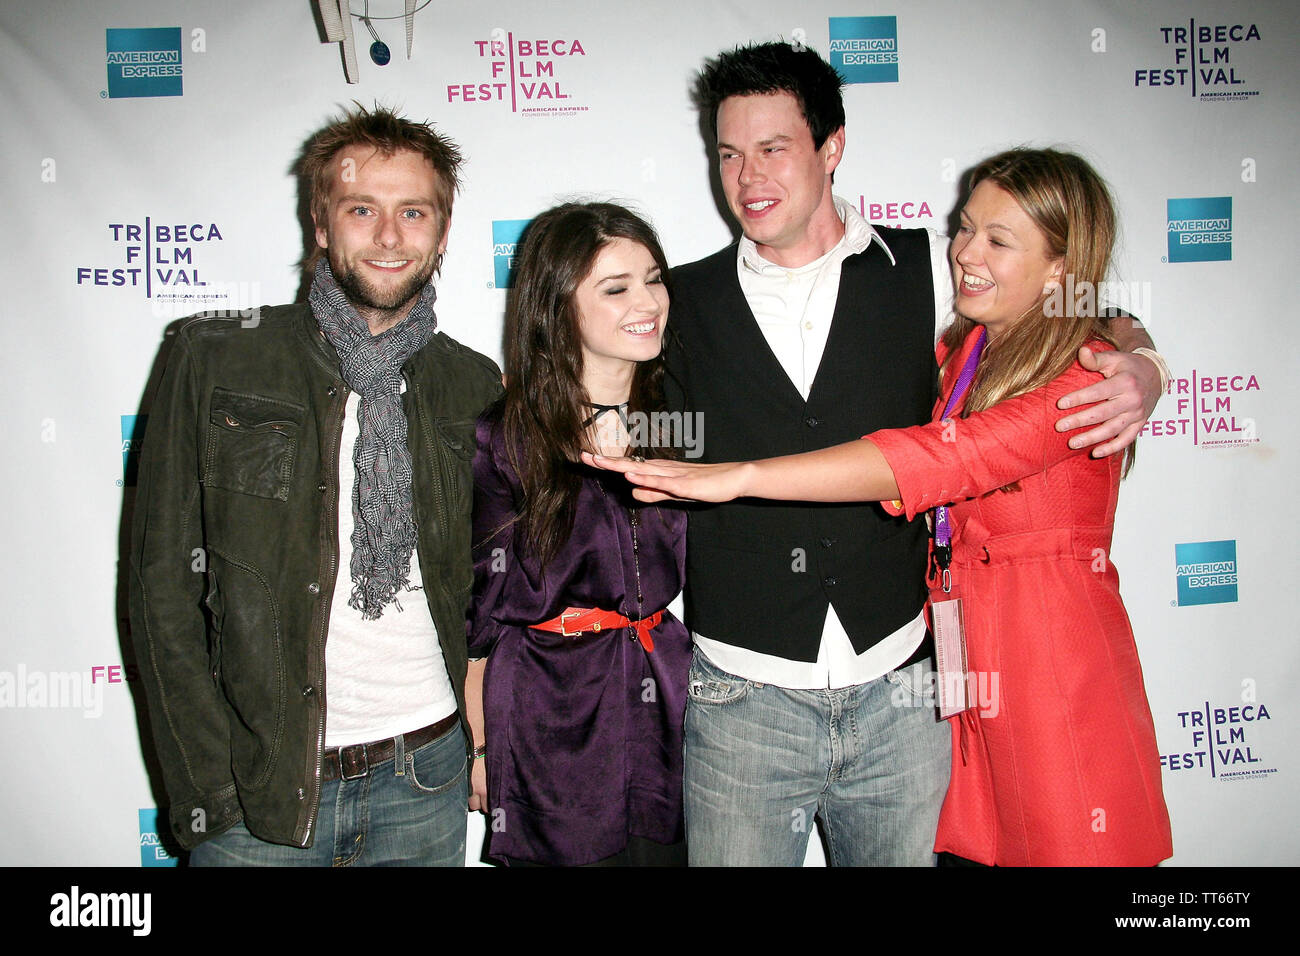 New York, USA. 26 April, 2008. Joe Anderson, Eve Hewson, David P. Emrich, Erica Dunton at the Premiere Of 'The 27 Club' At The 2008 Tribeca Film Festival at AMC Theater. Credit: Steve Mack/Alamy - Stock Image